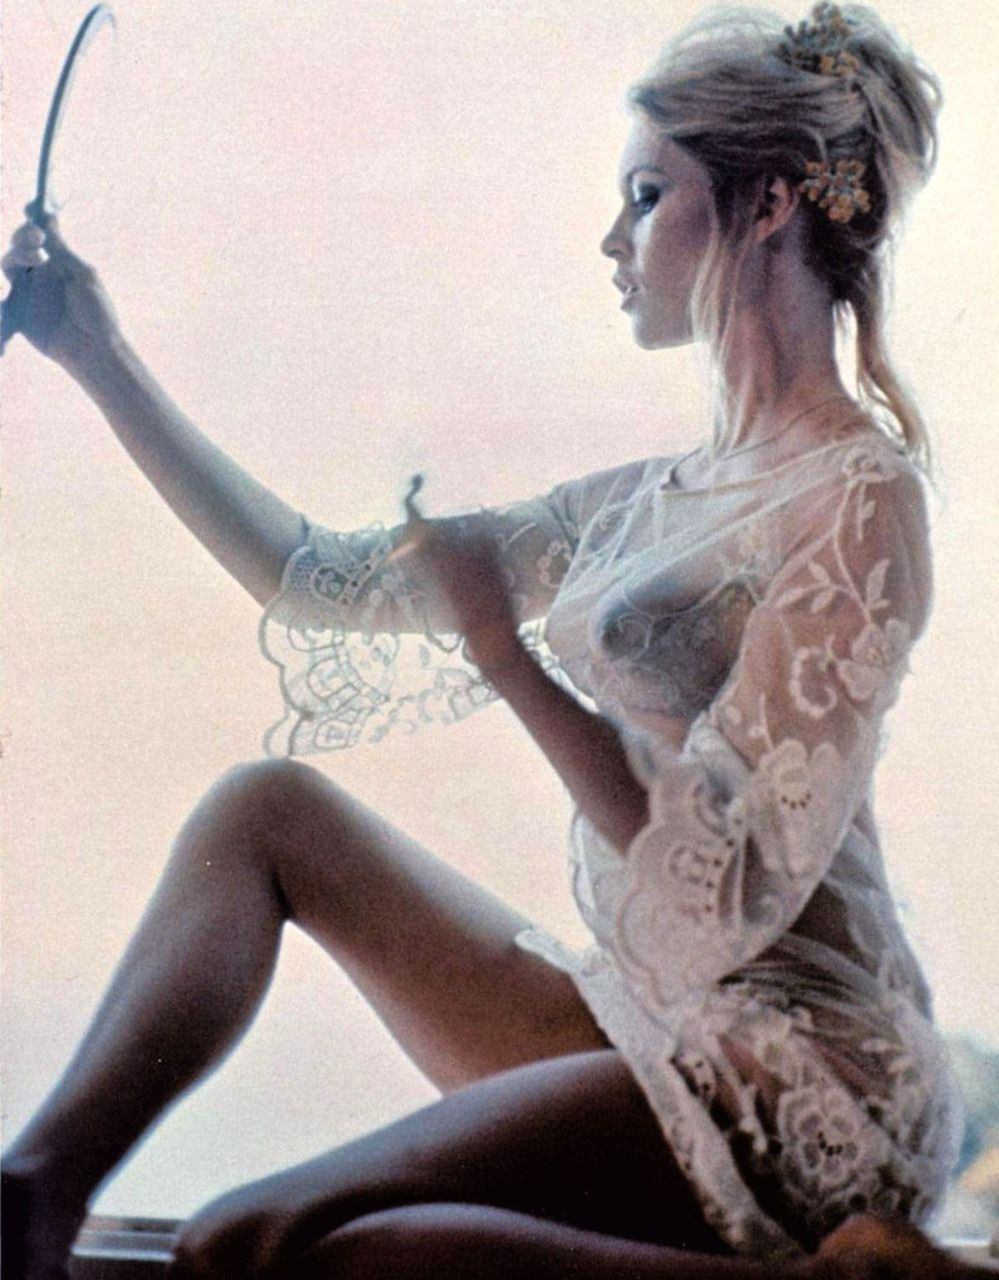 brigitte bardot | brigitte bardot | pinterest | bardot, films and bb